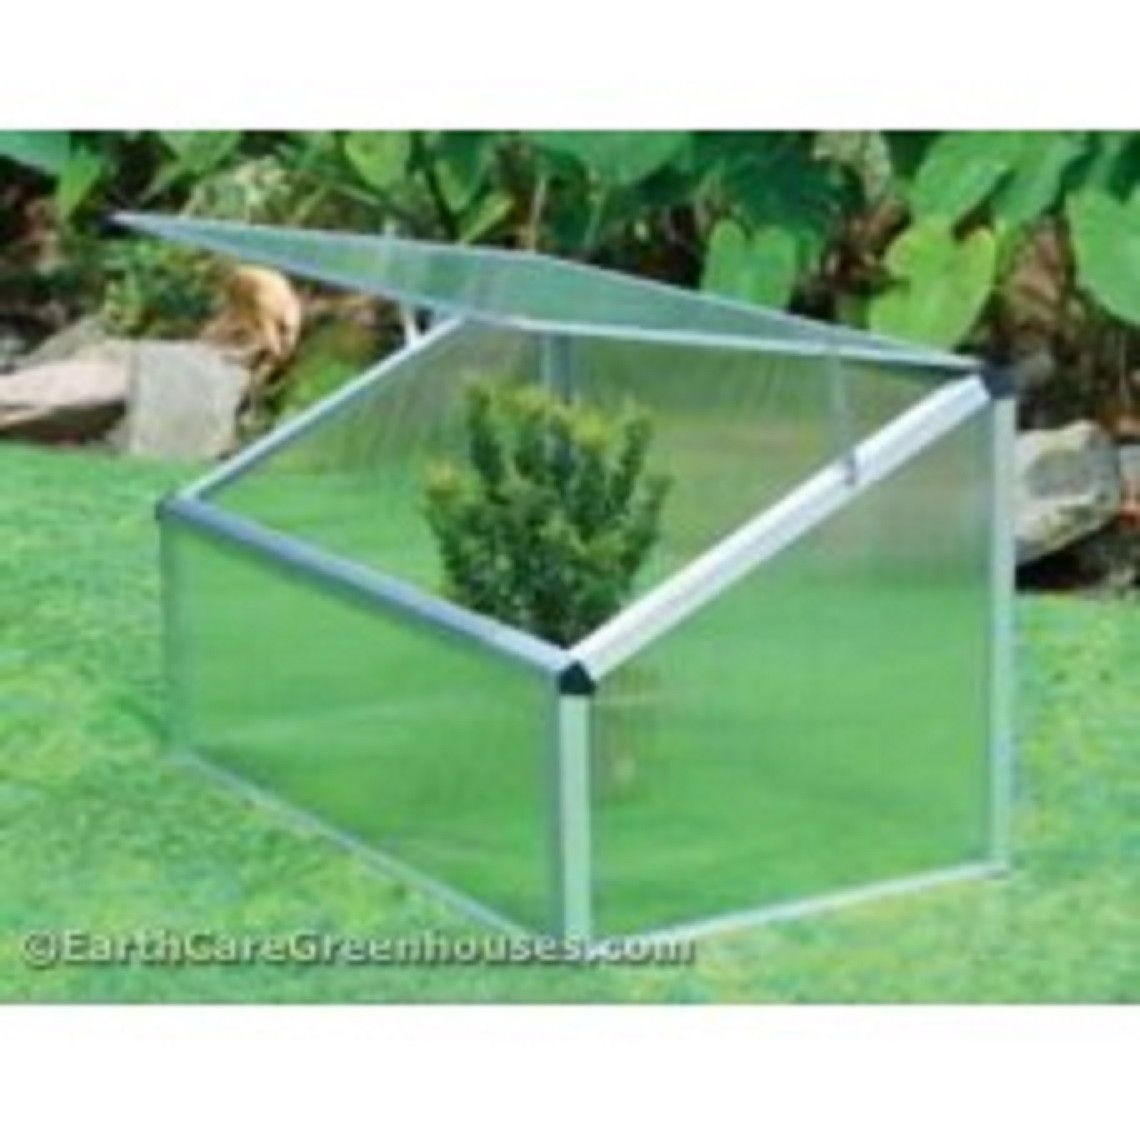 Single Cold Frame Greenhouse | Pinterest | Cold frames, Gardens and ...